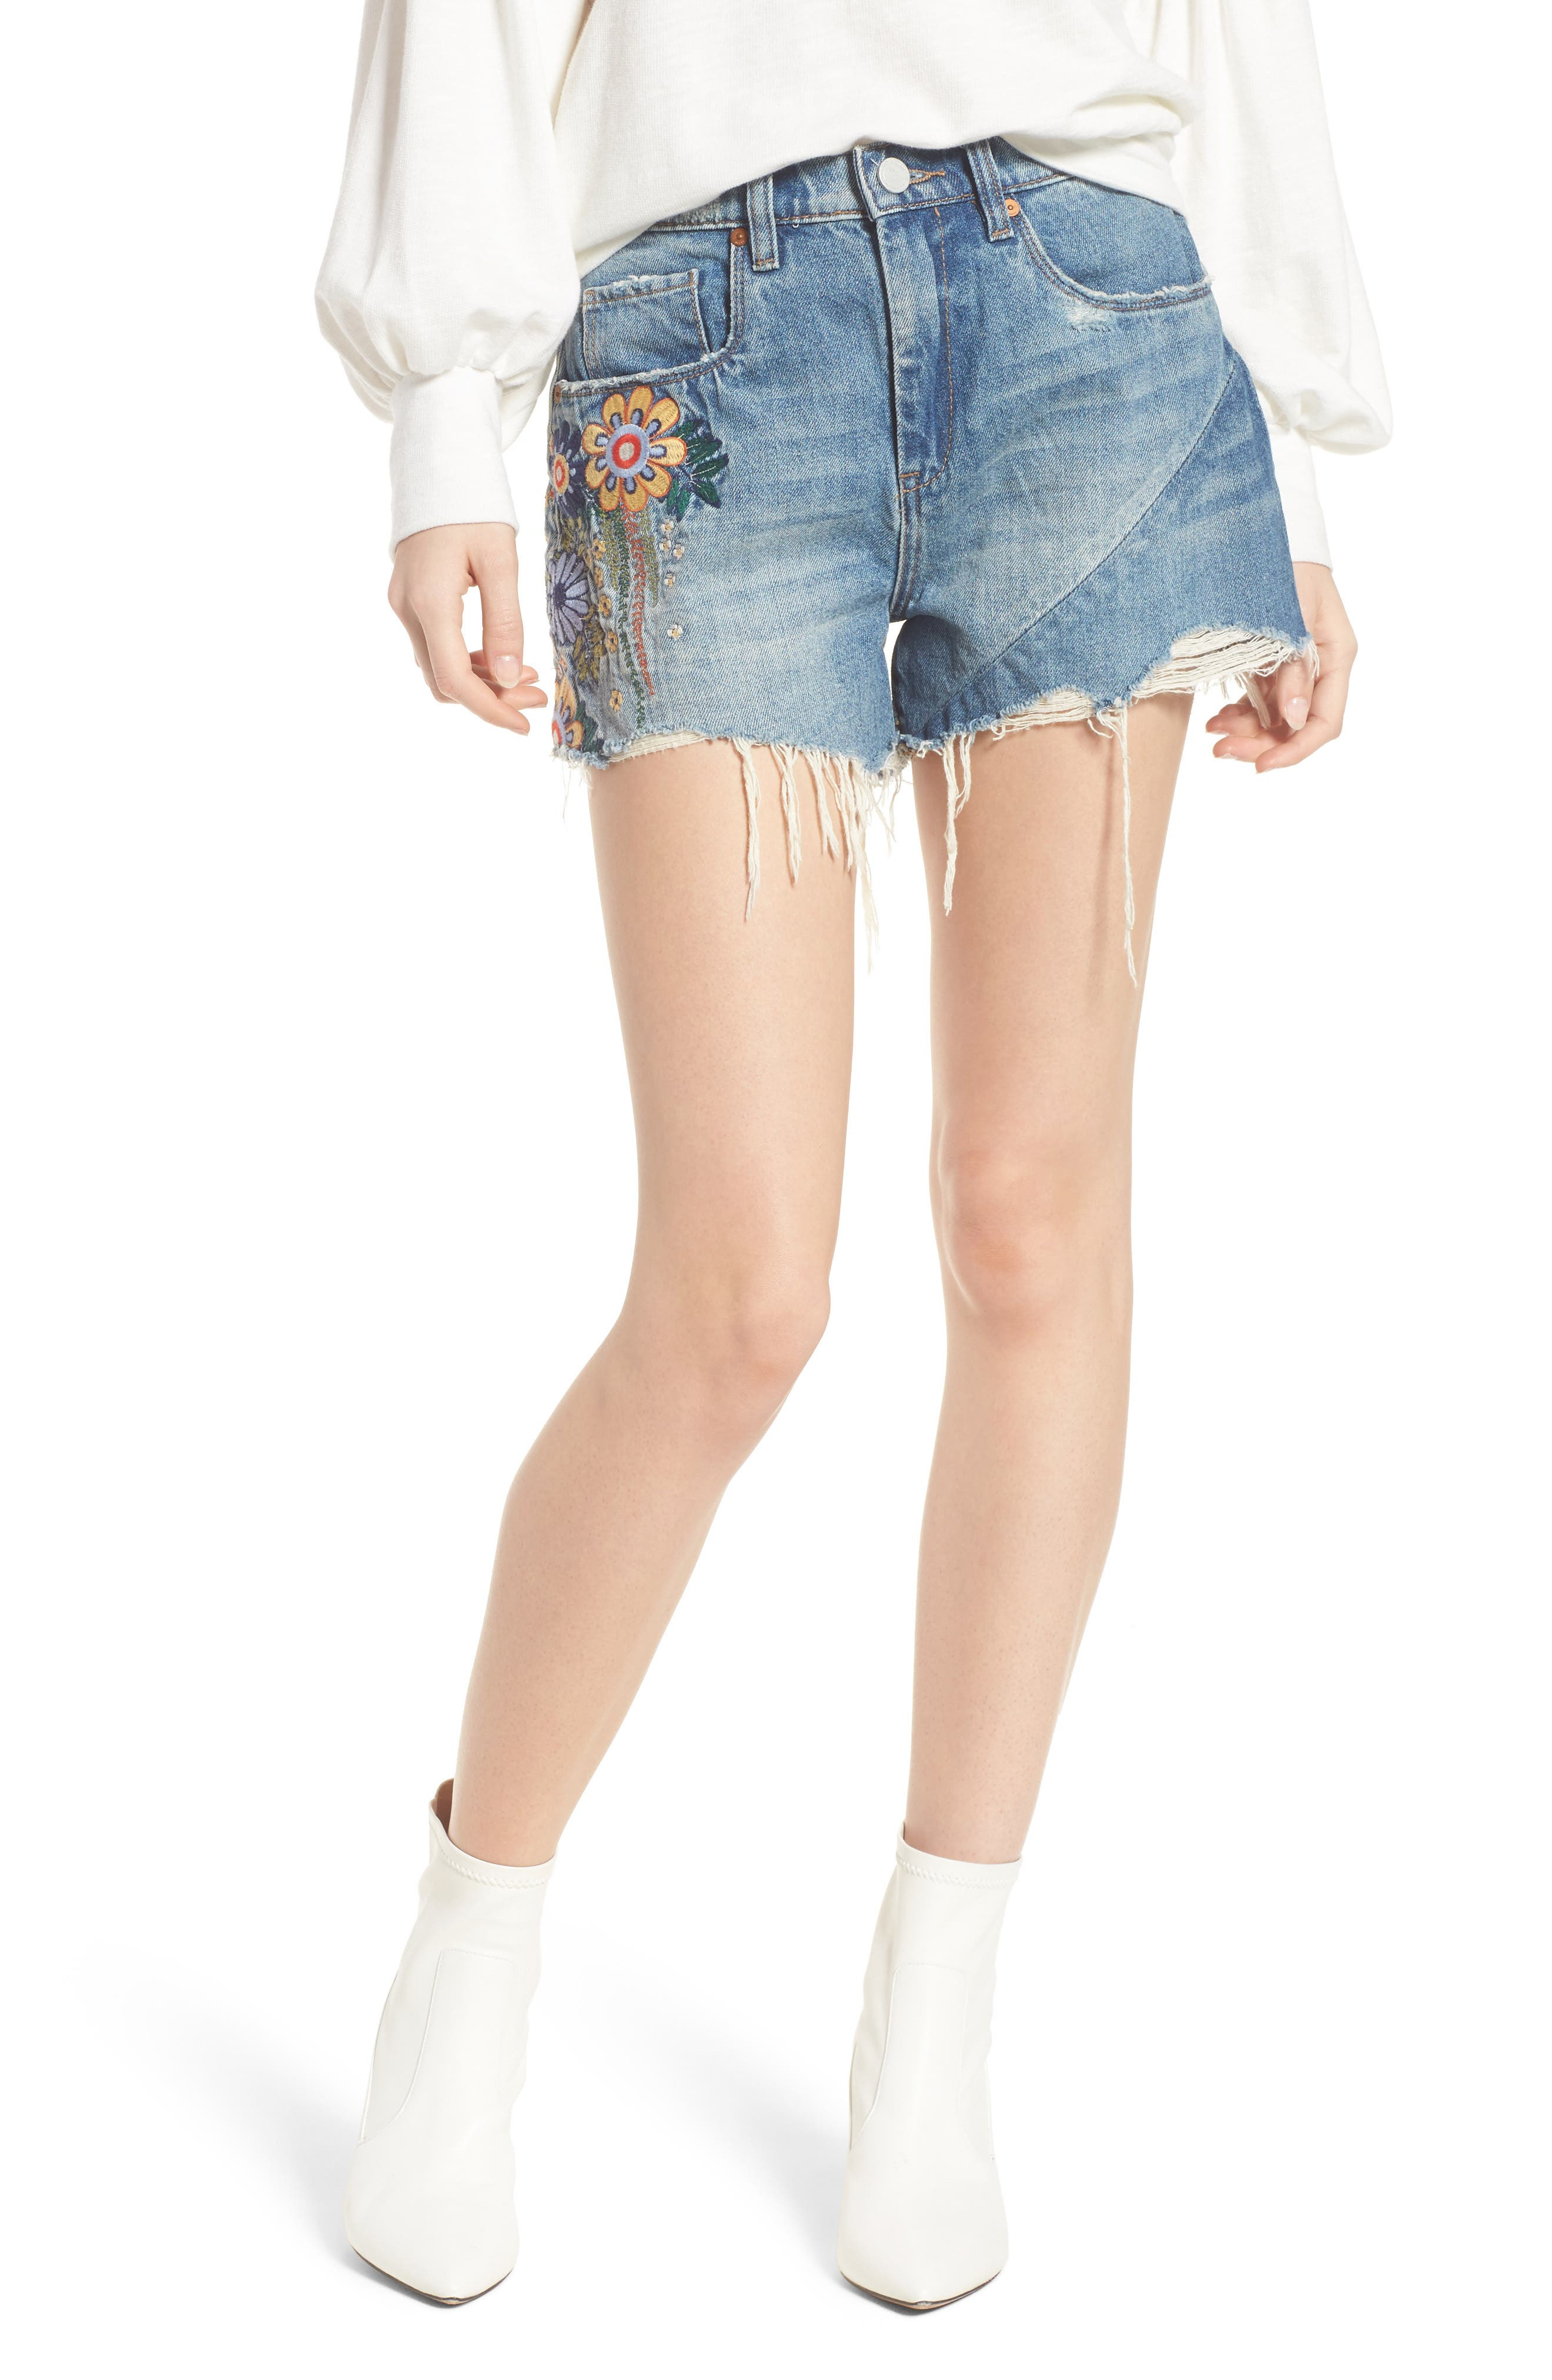 Sonic Bloom Embroidered Denim Shorts,                             Main thumbnail 1, color,                             Blue